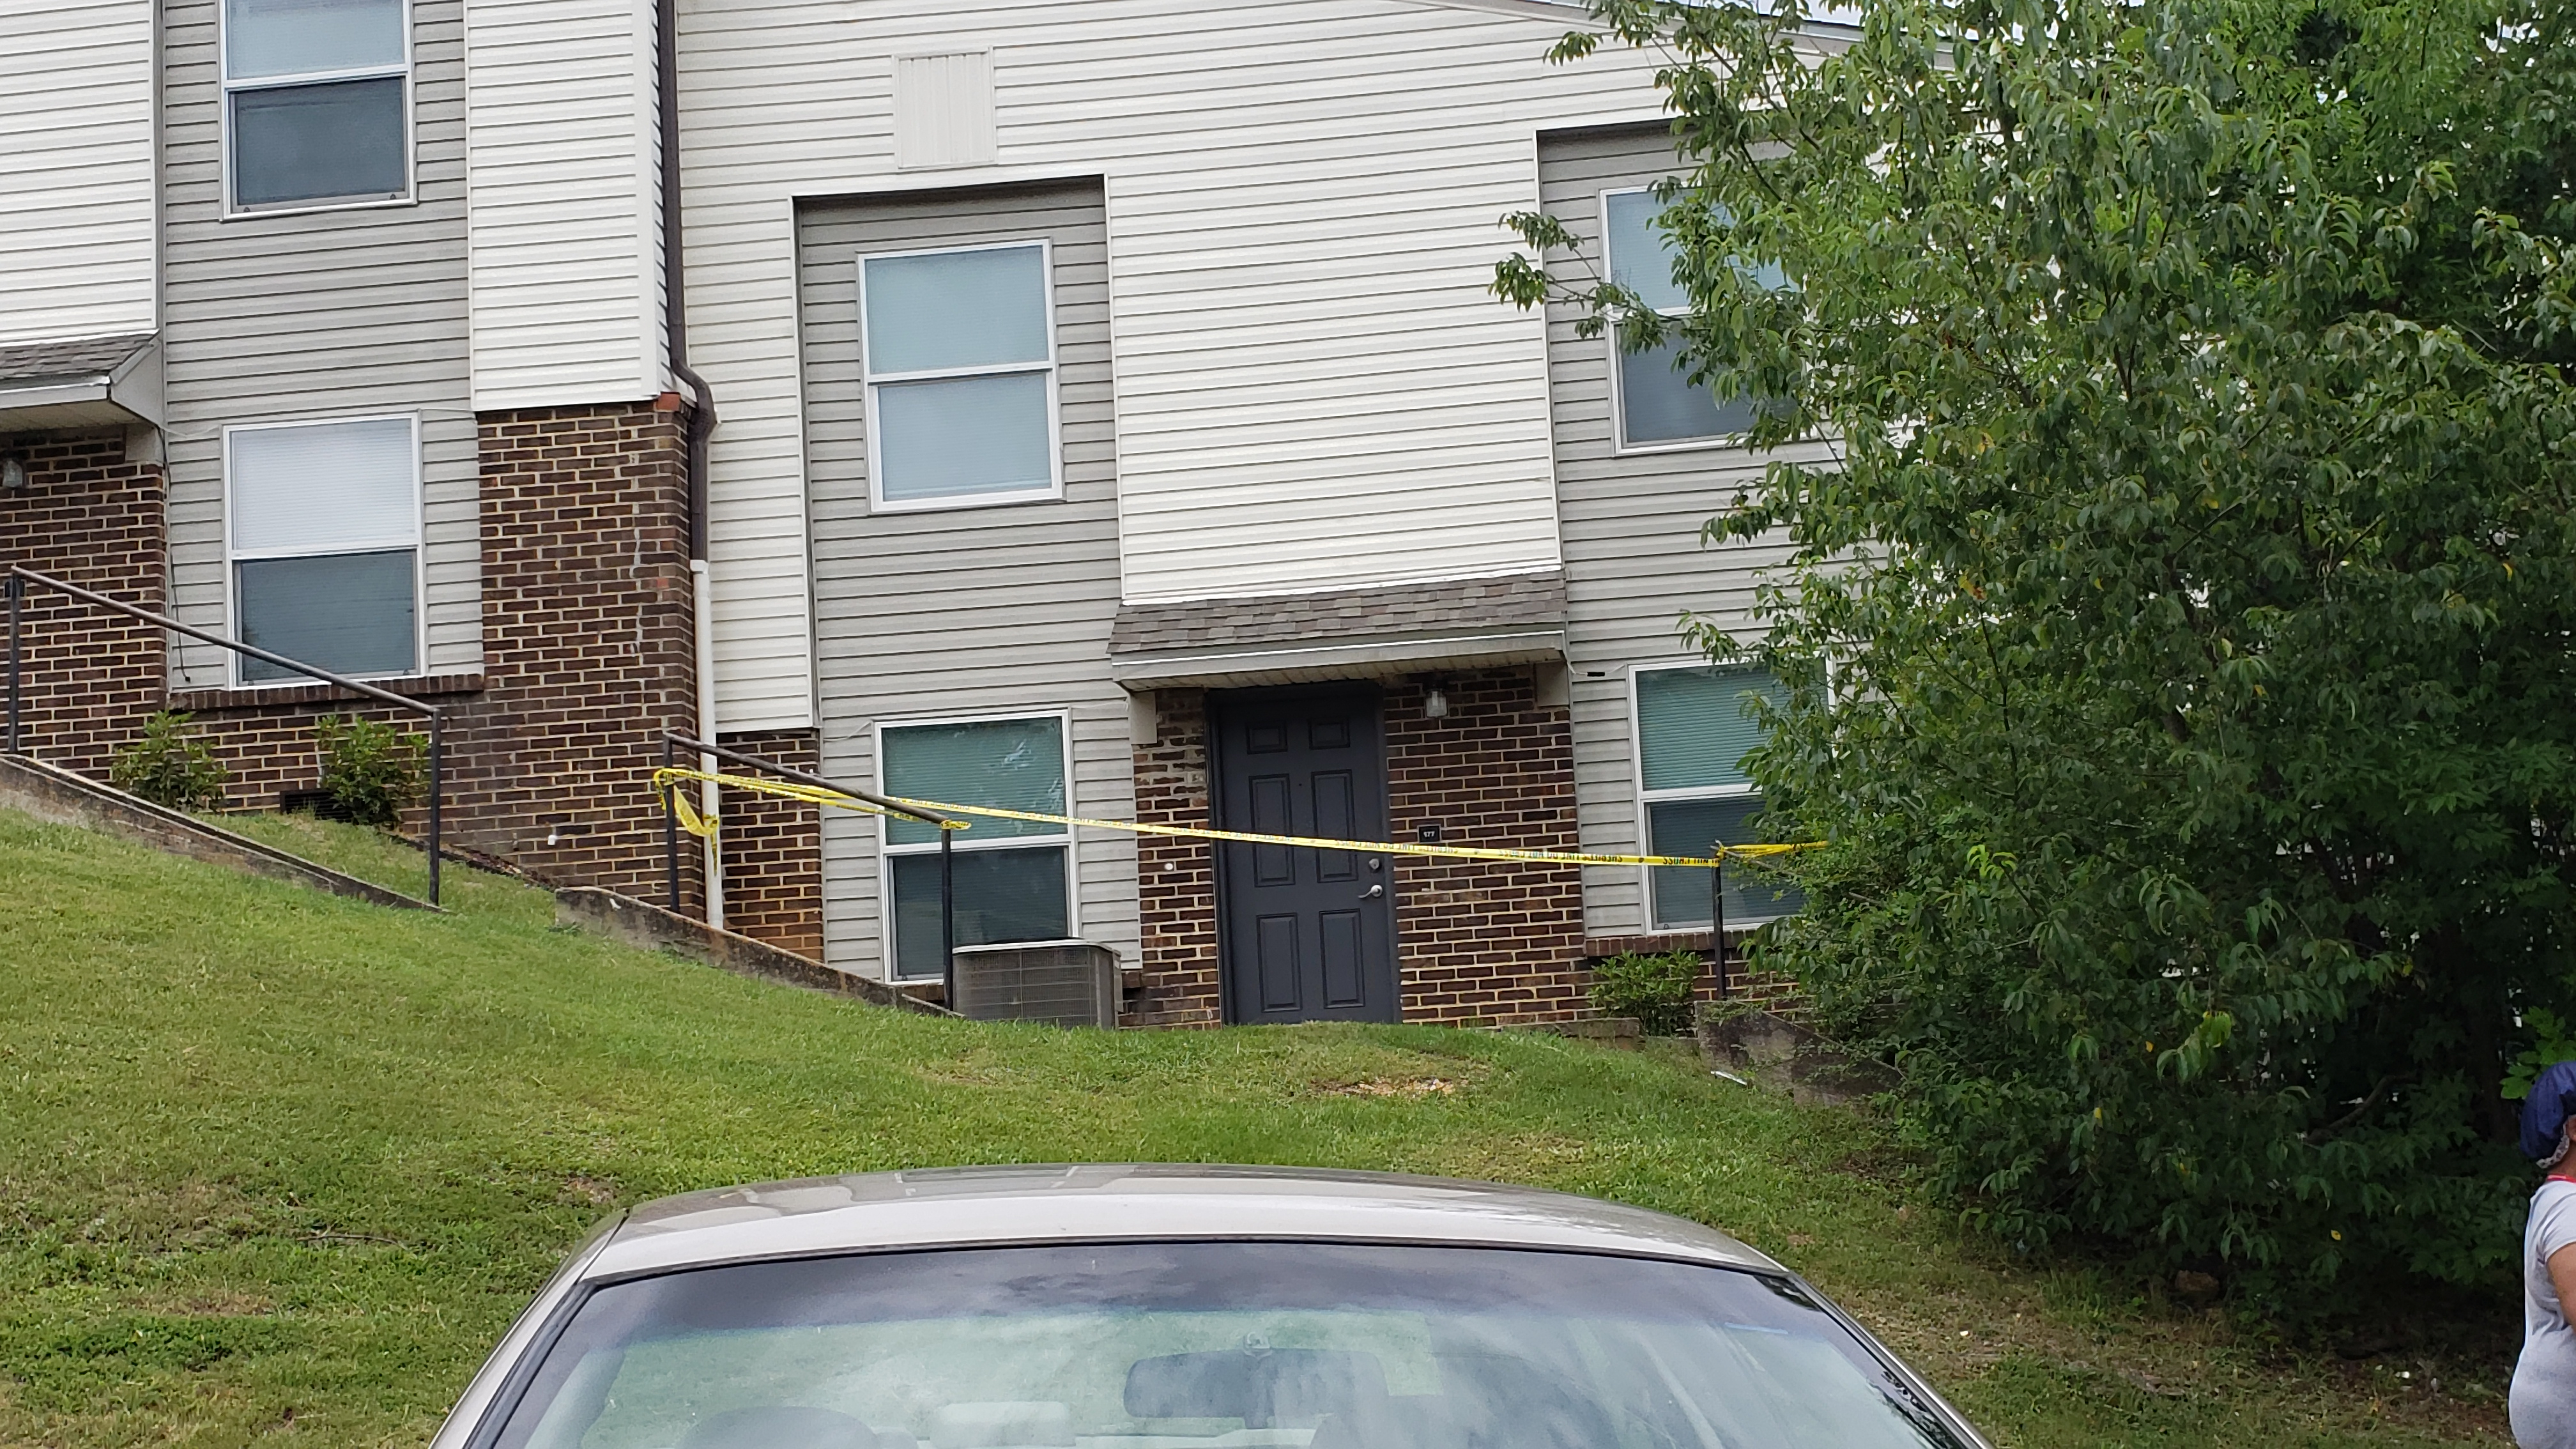 Shooting investigation underway at Summit Ridge Apartments